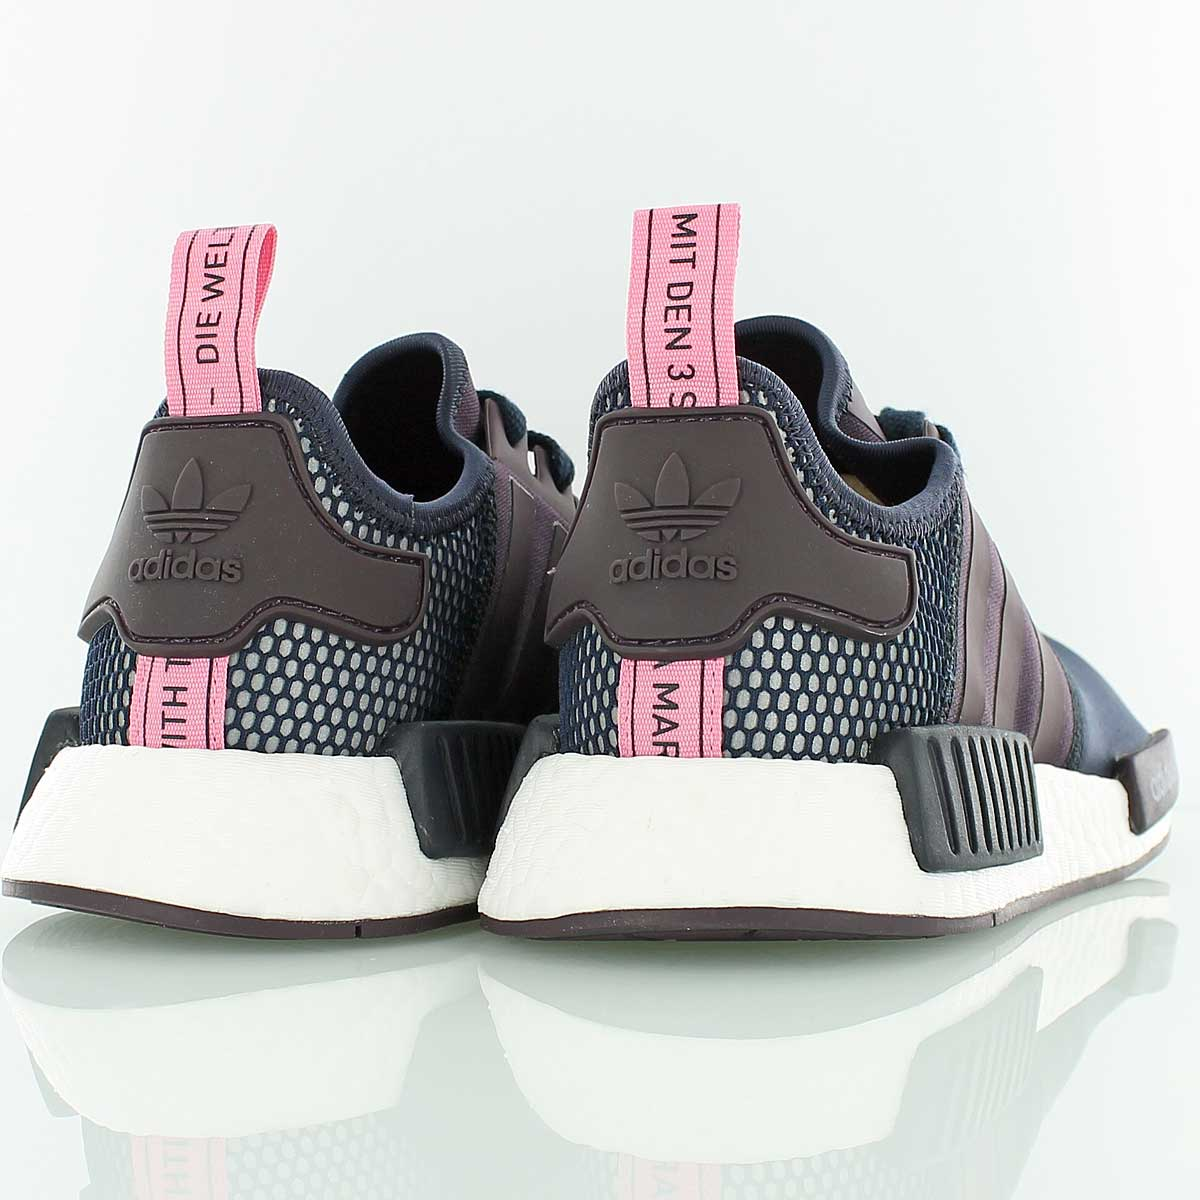 Nmd Cher Adidas Chaussures Adidas Cher Nmd Chaussures rCtsdxhQ